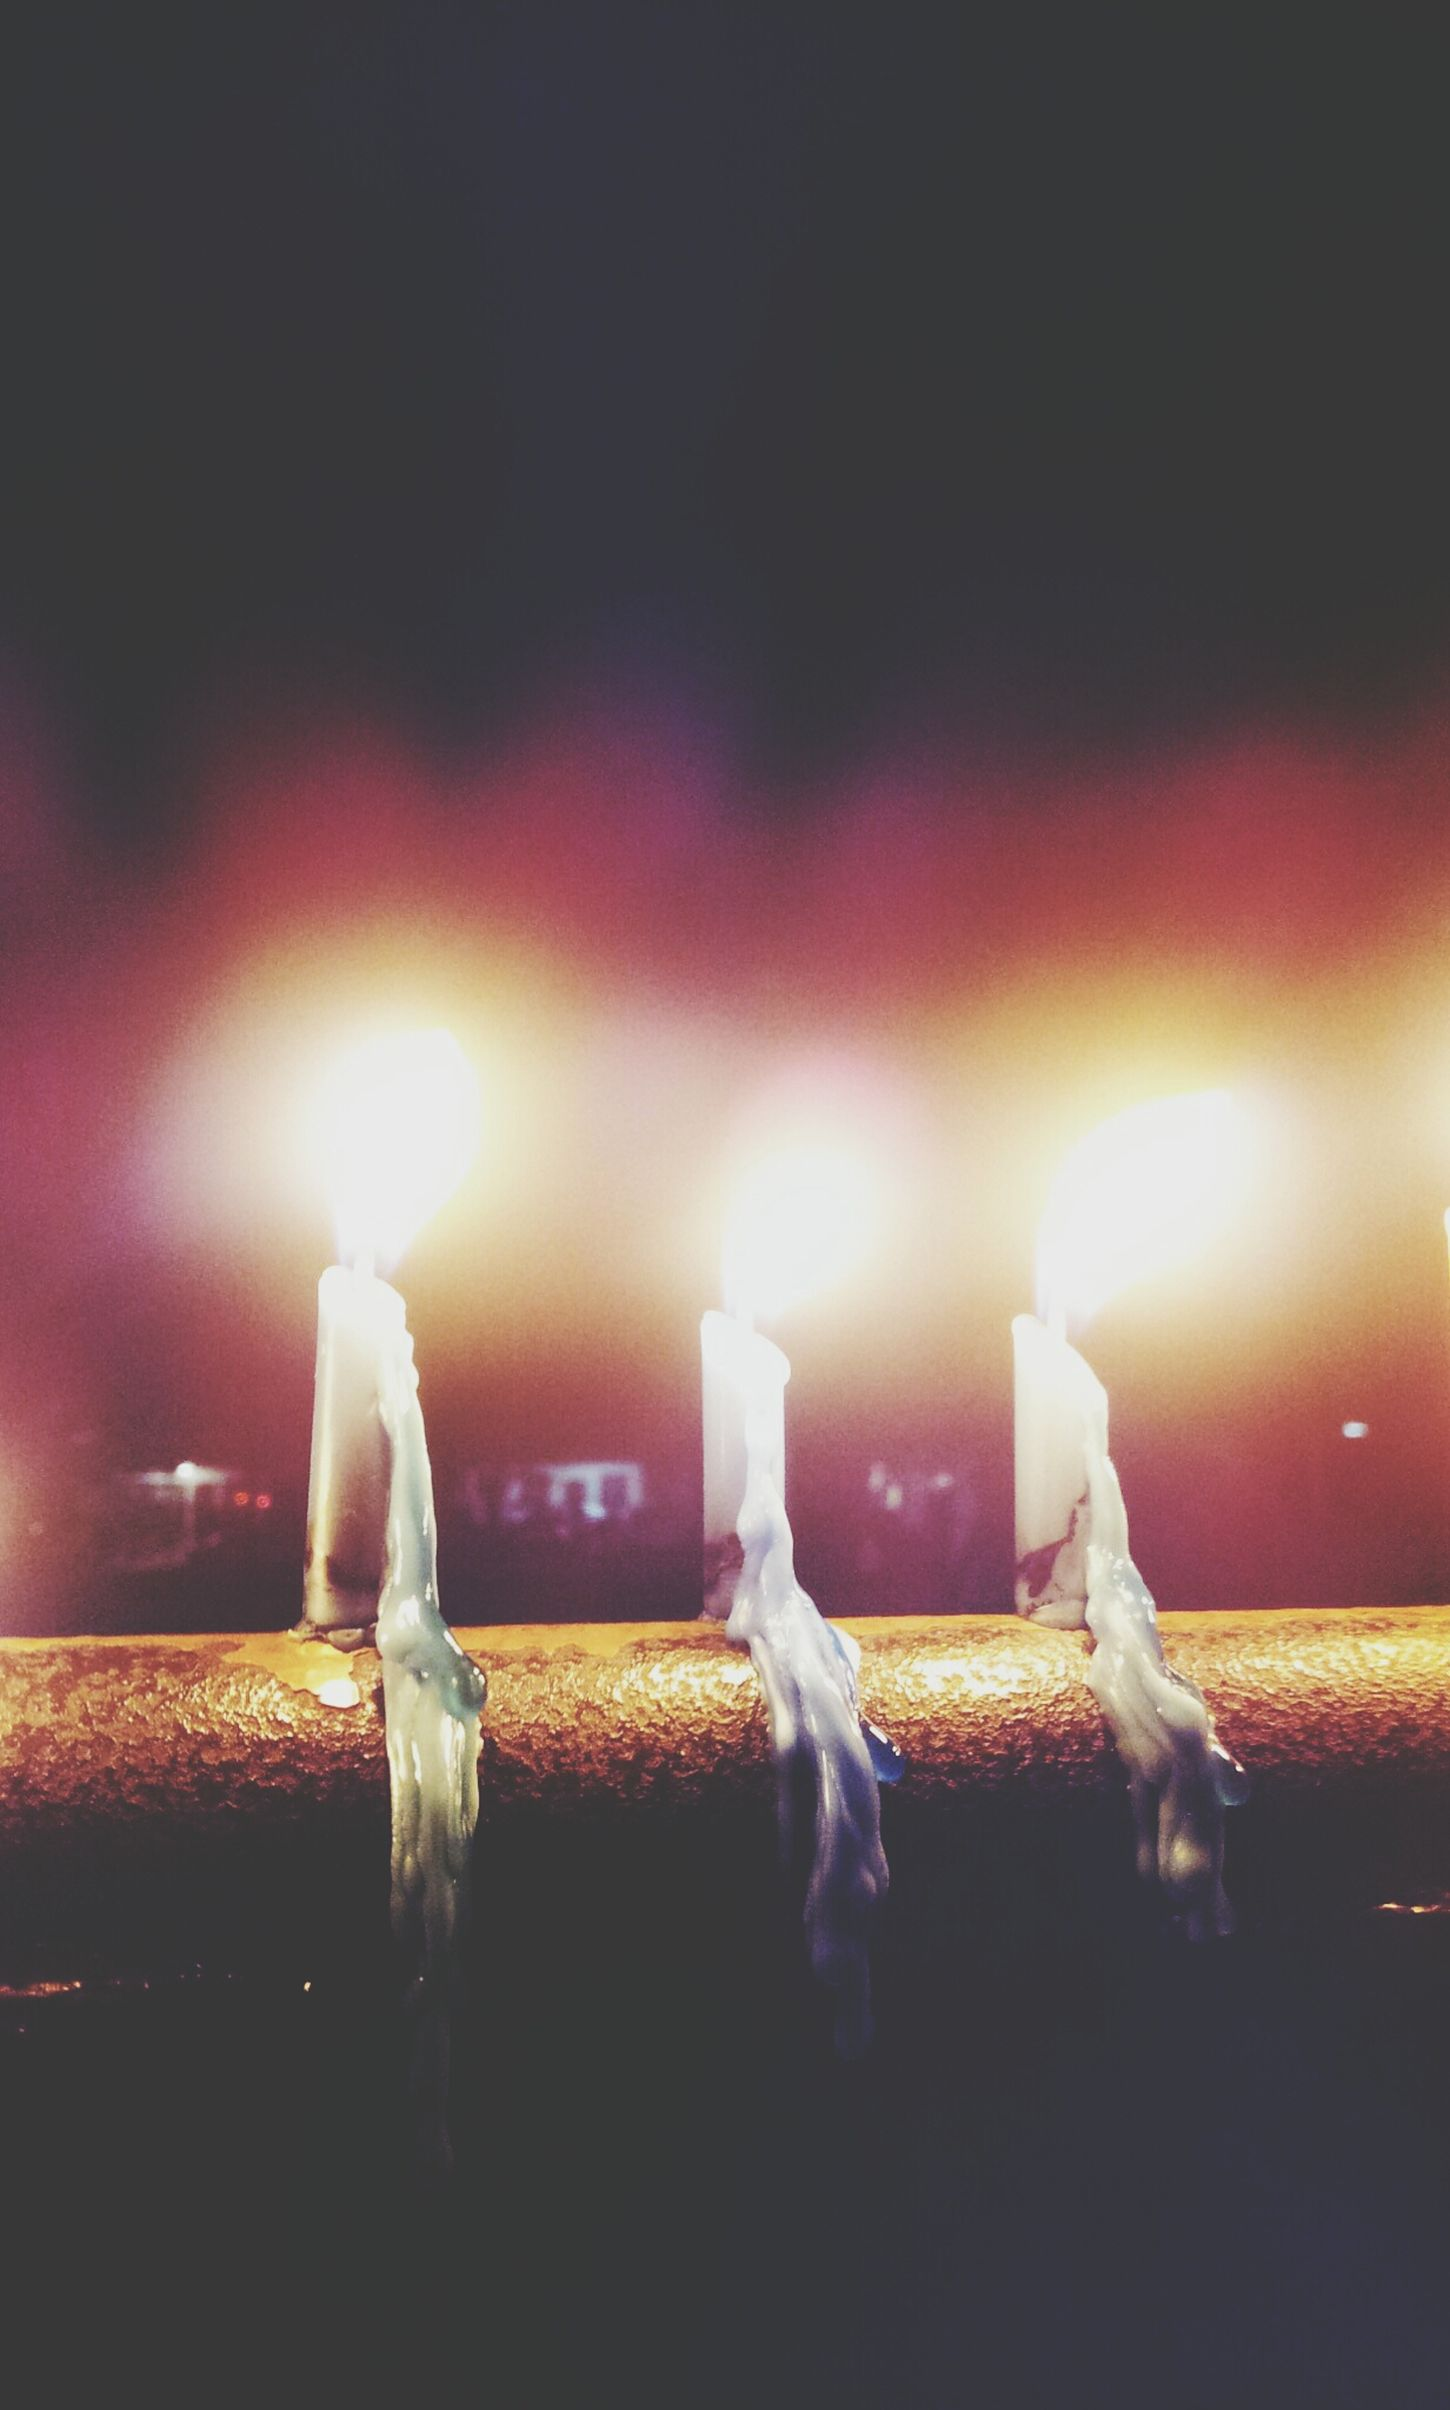 instead of lanterns, we played with candles. Happymidautumnfestival